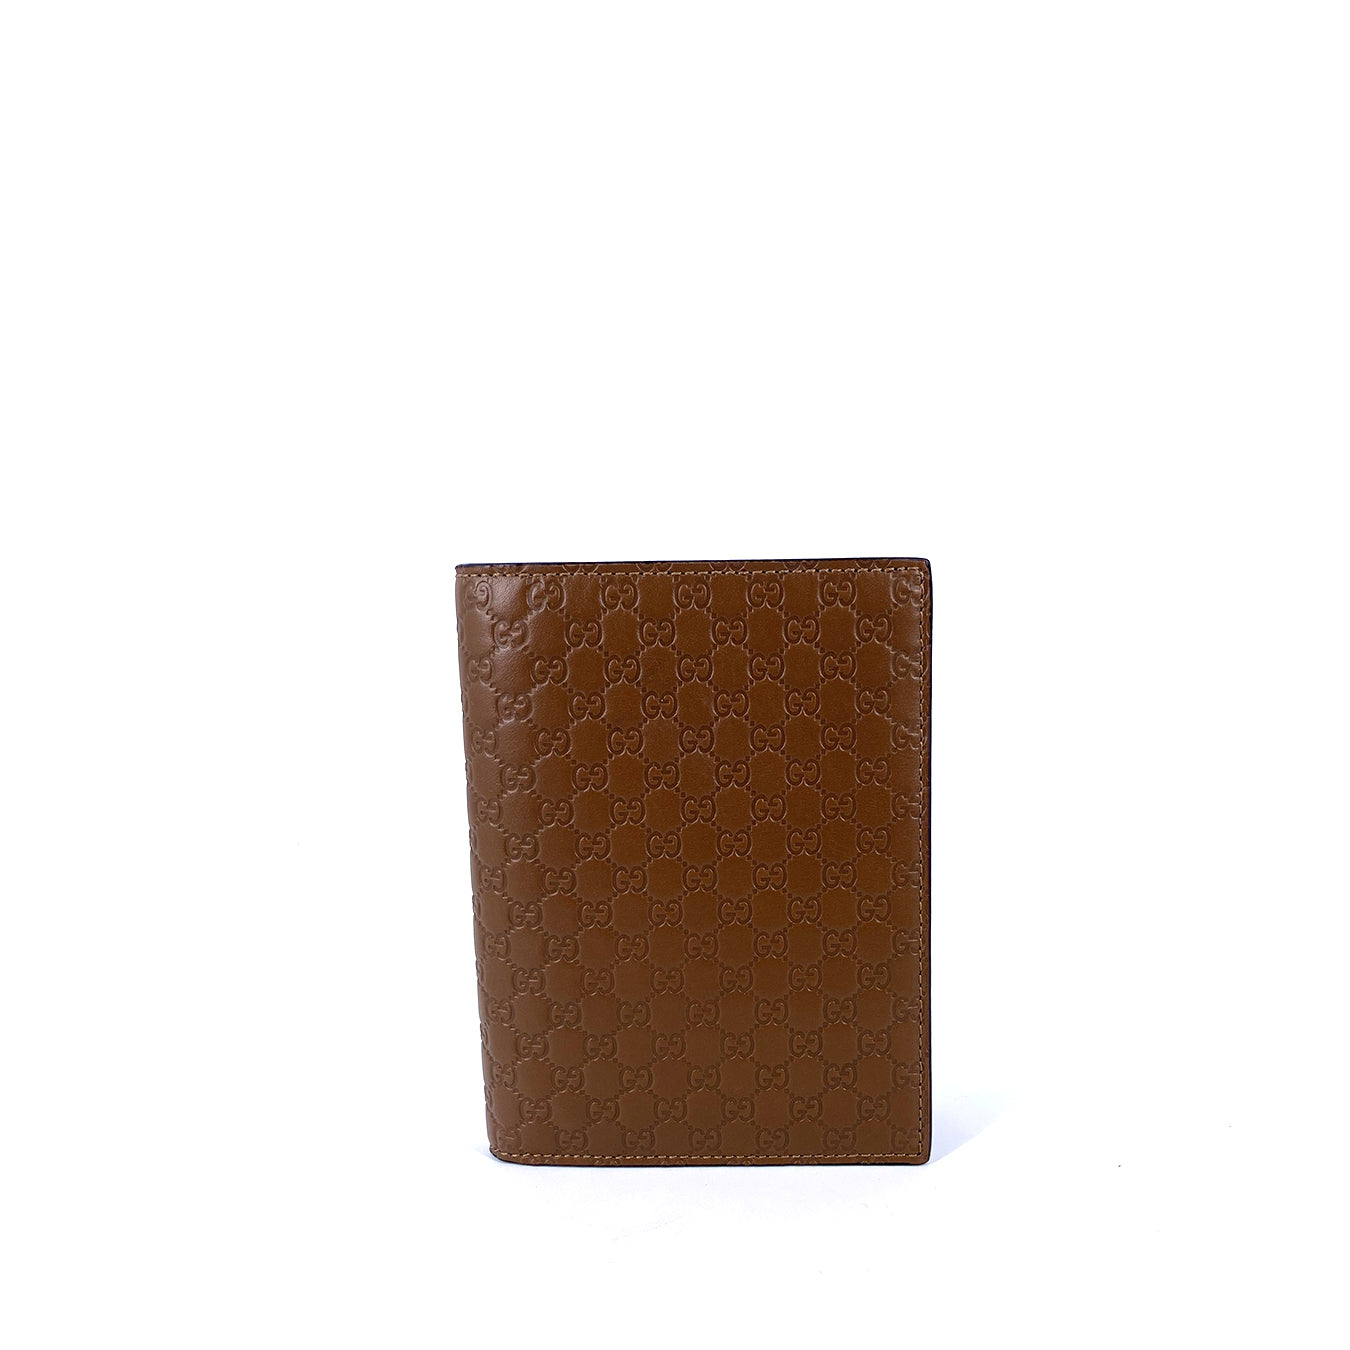 Gucci Microguccissima GG Leather Bifold Men's Wallet Brown 11 x 14